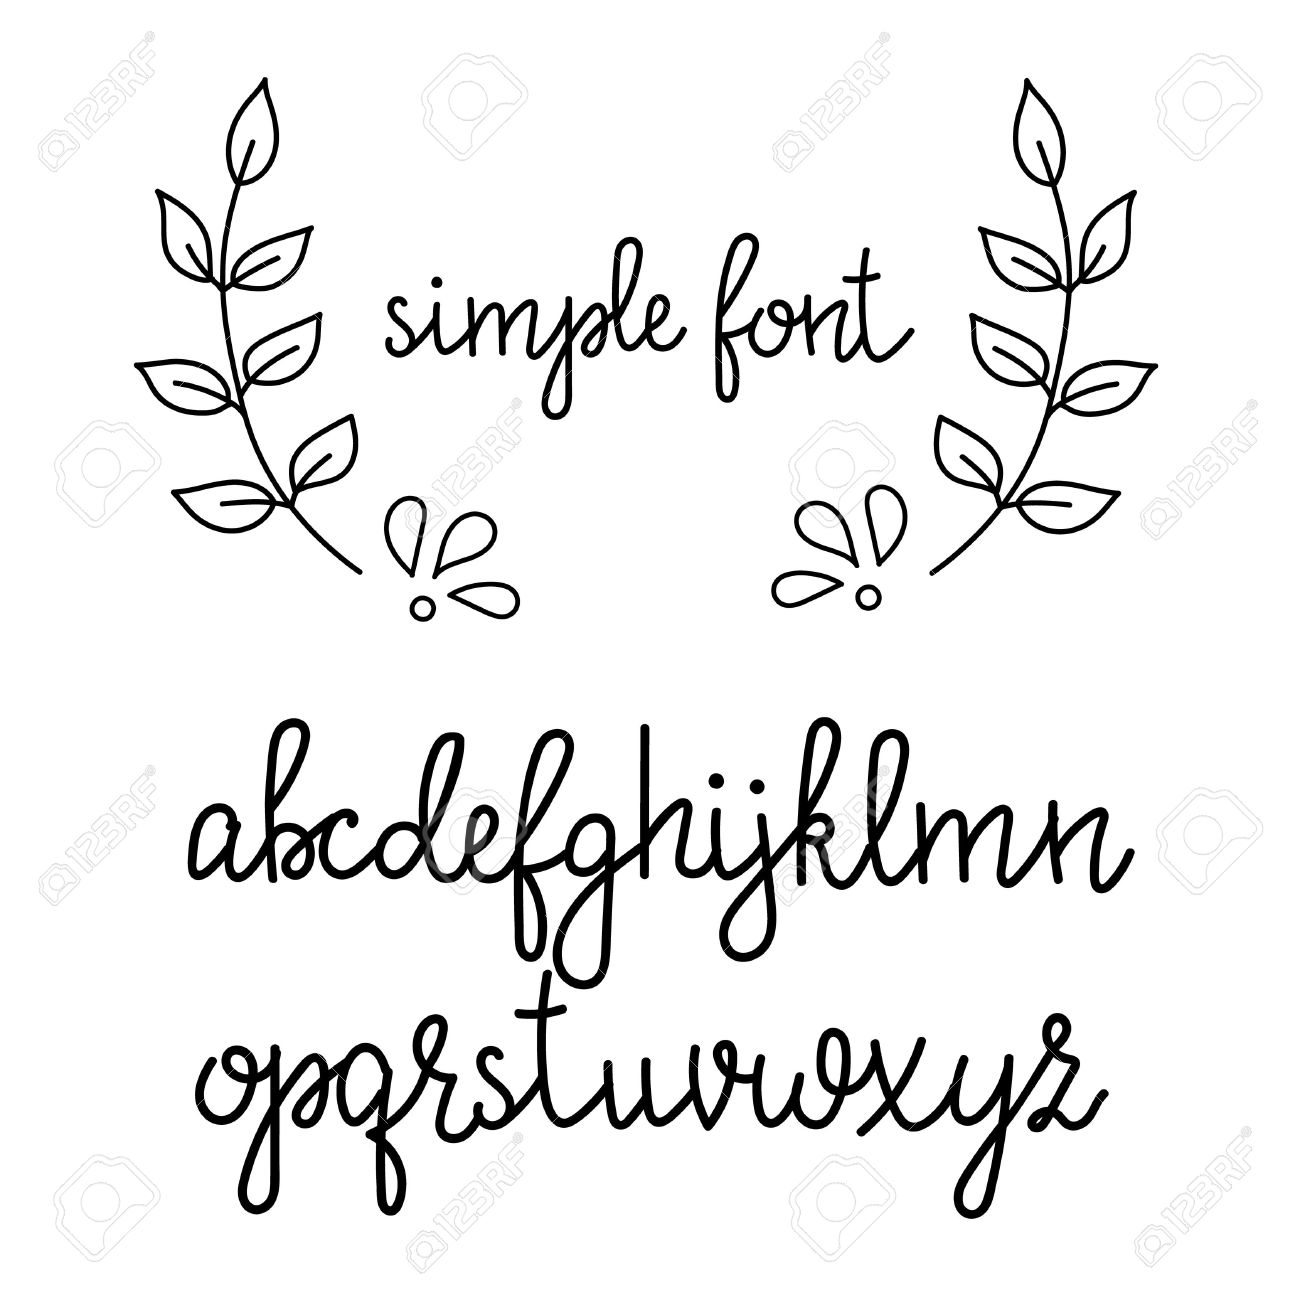 Simple handwritten pointed pen calligraphy cursive font. Calligraphy alphabet. Cute calligraphy letters. Isolated letters. Typography, decorative graphic design. - 50002661